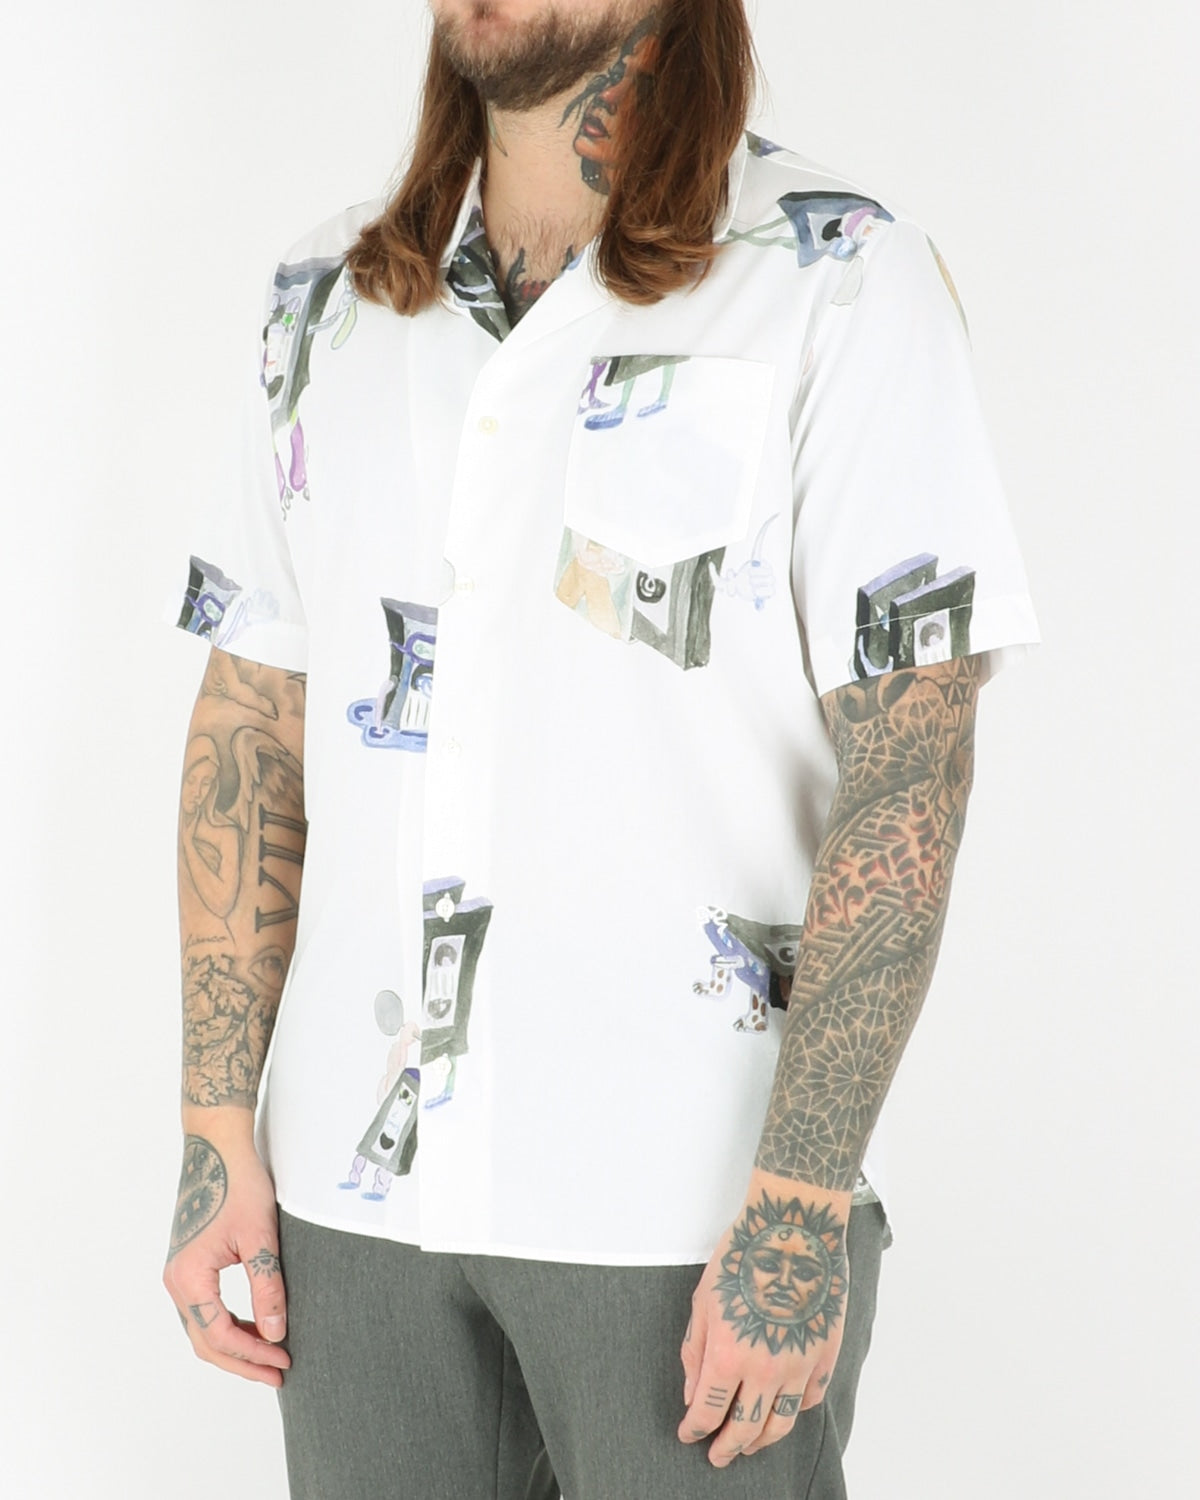 soulland_cornwall shirt_all over printed_2_3